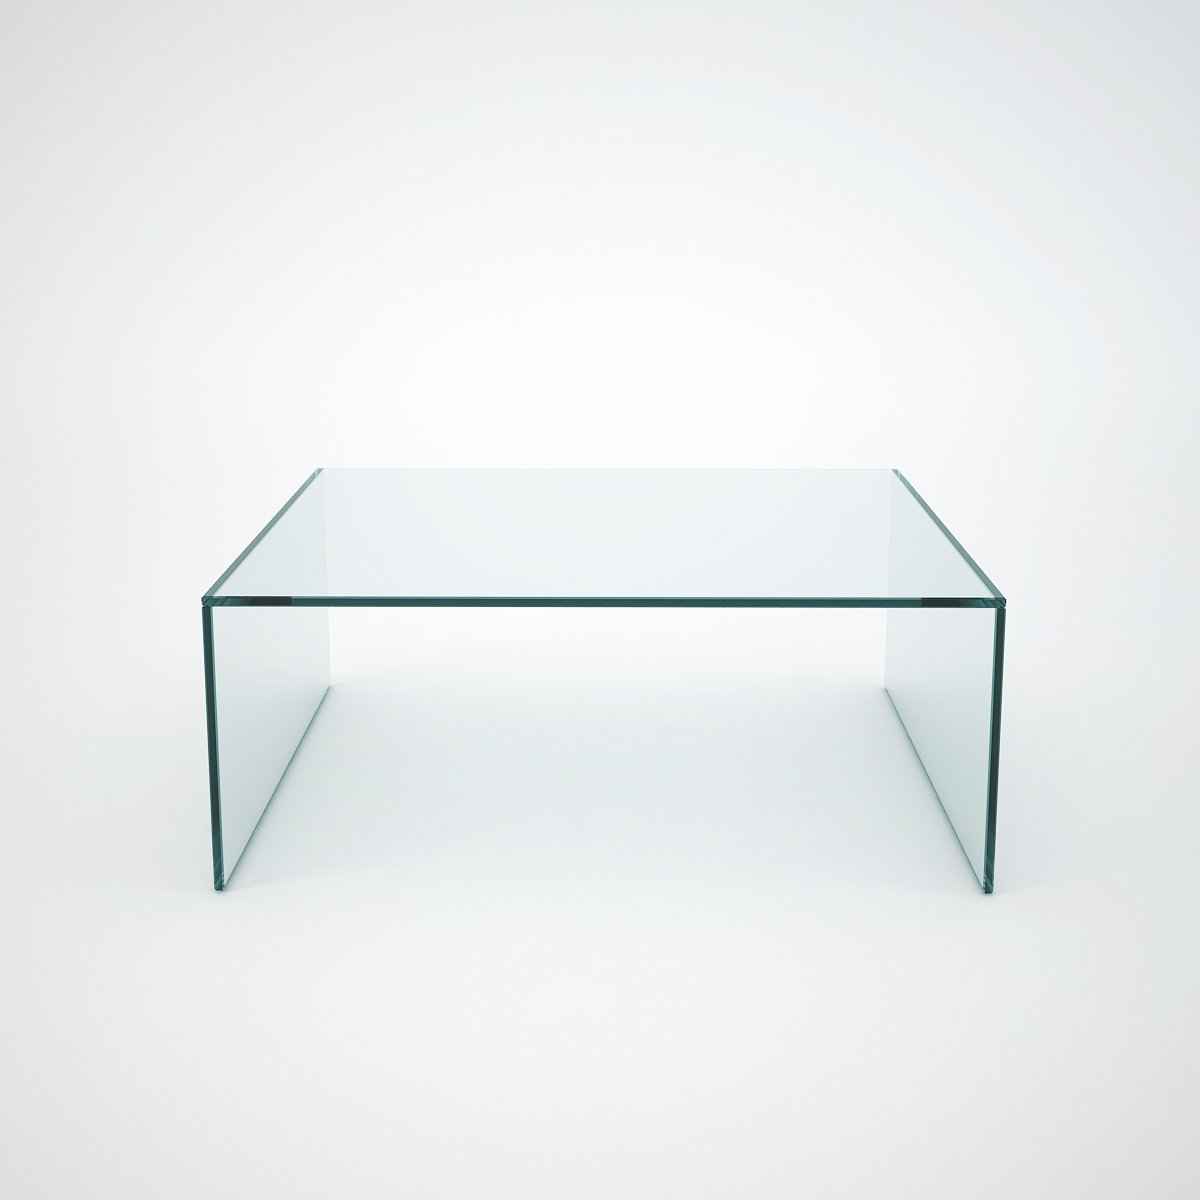 judd square glass coffee table